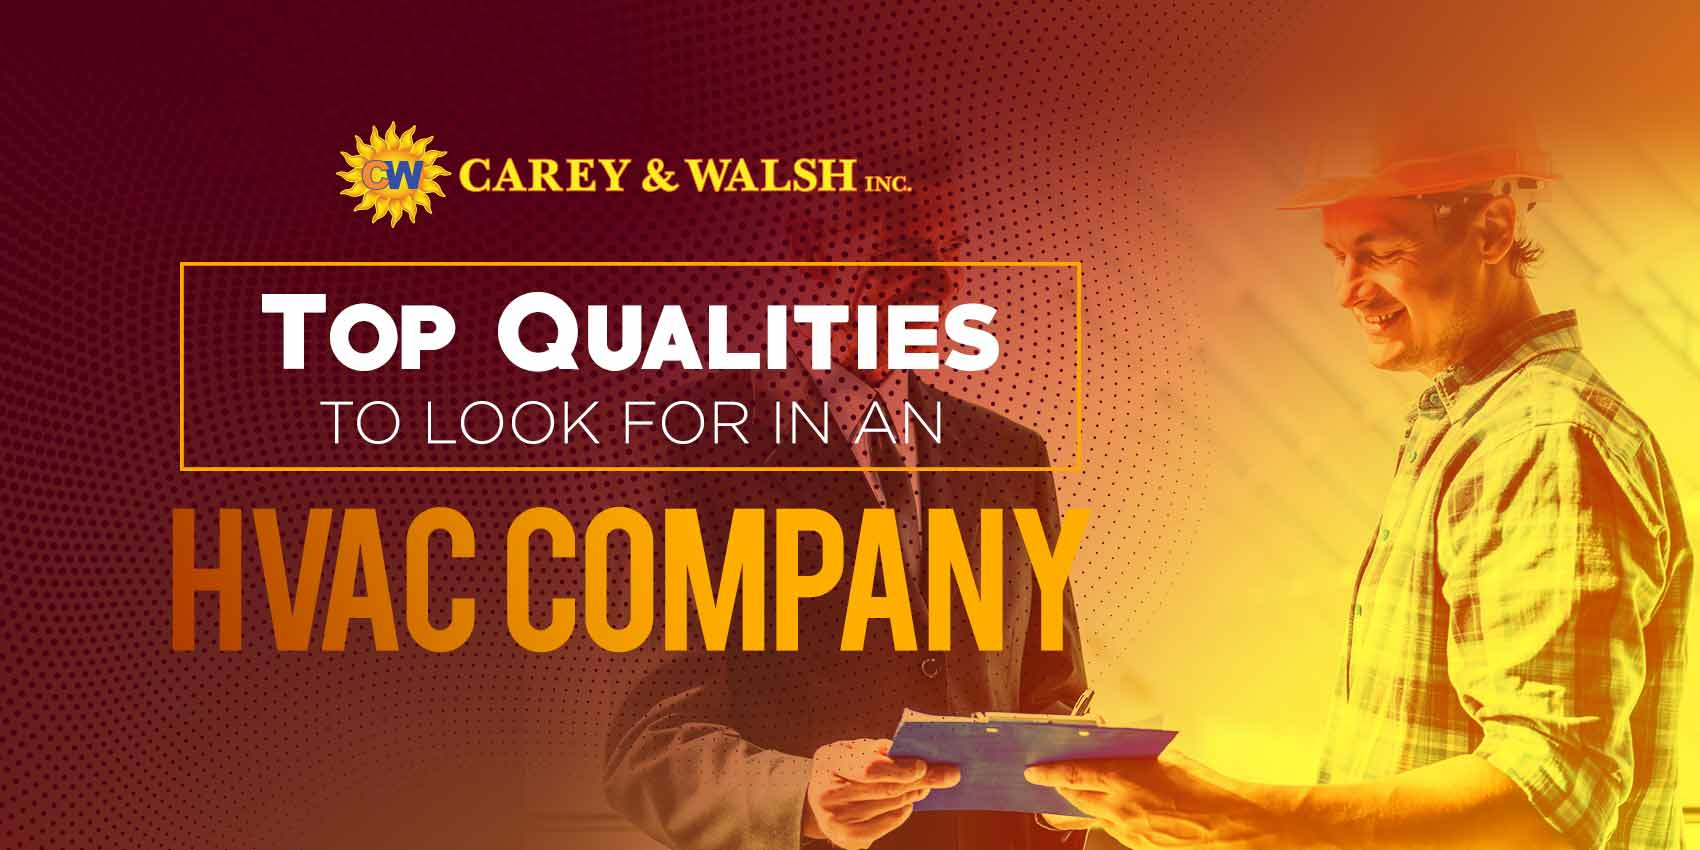 Top Qualities to Look For in an HVAC Company